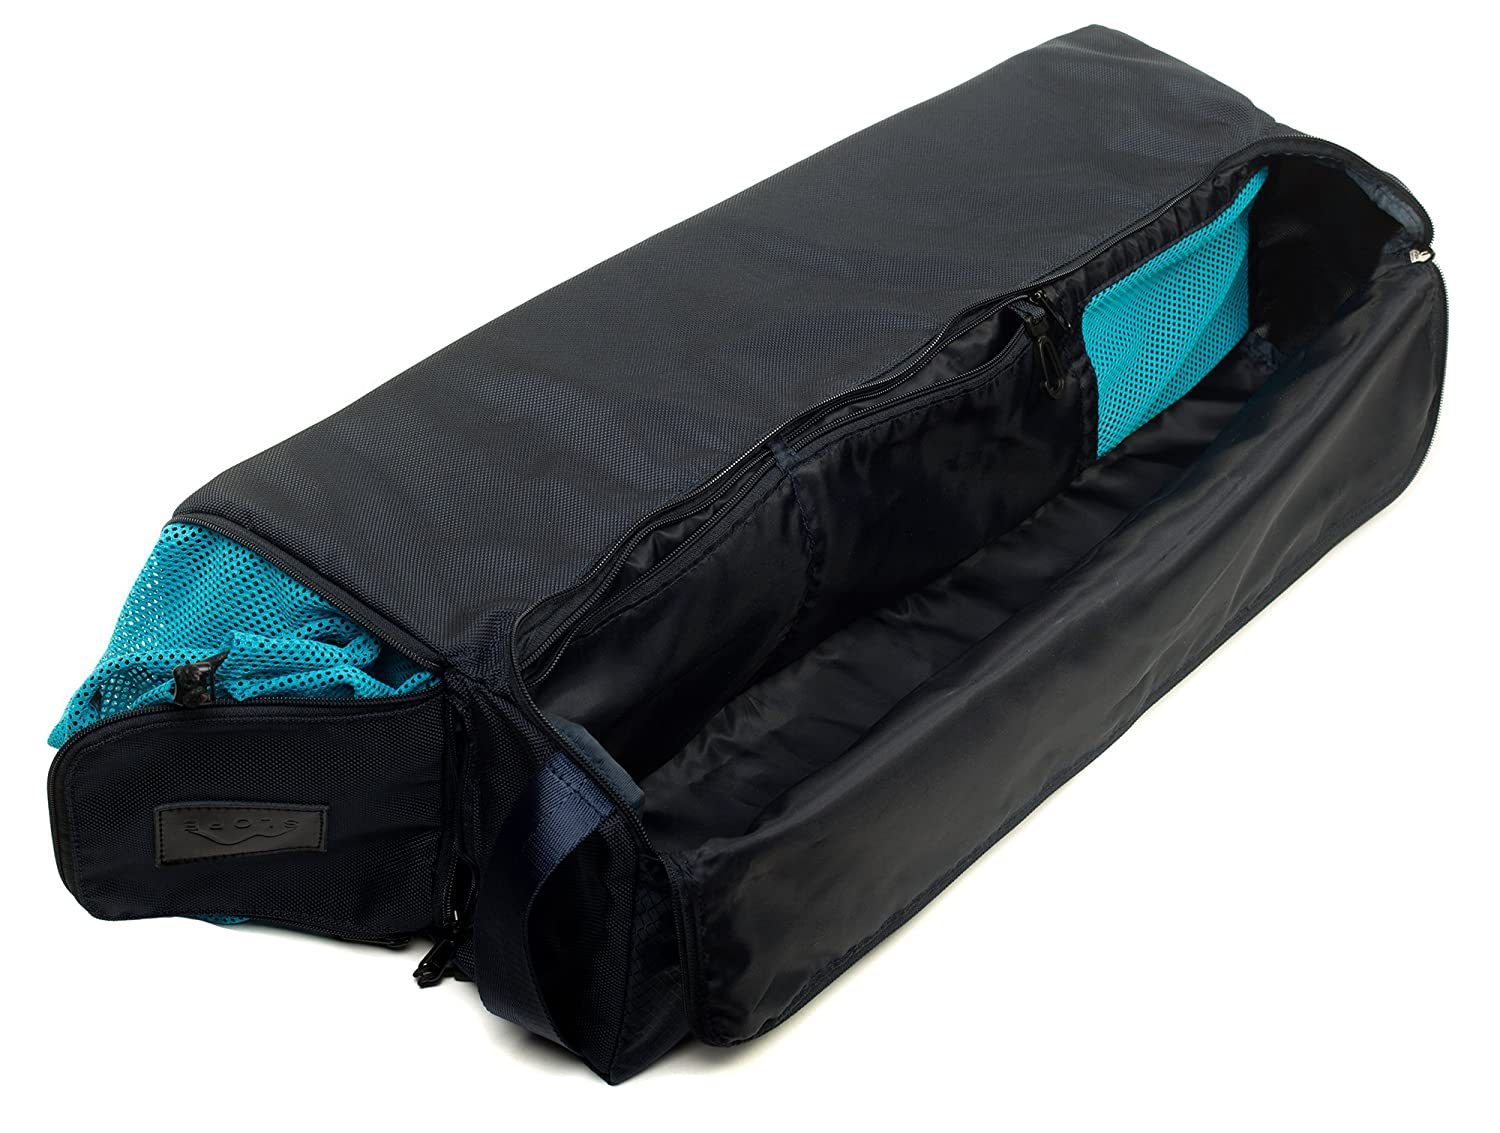 Yoga Mat Bag Pro for Women and Men By Slope Bags - Extra Large Waterproof  Fitness Martial Arts Gym ... 4c5eb995d4193